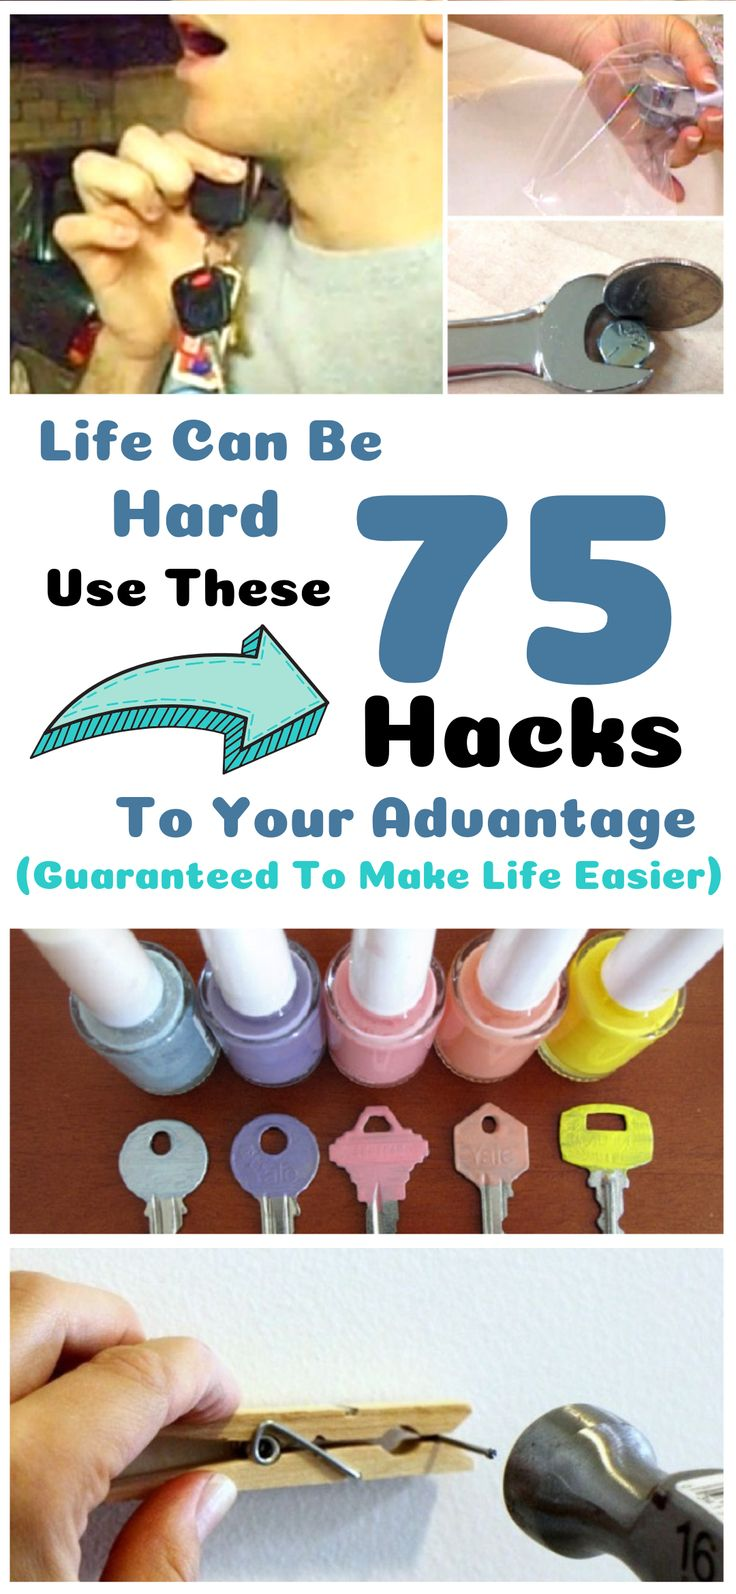 Life Can Be Hard. Use These 75 Life Hacks To Your Advantage (Guaranteed To Make Life Easier)